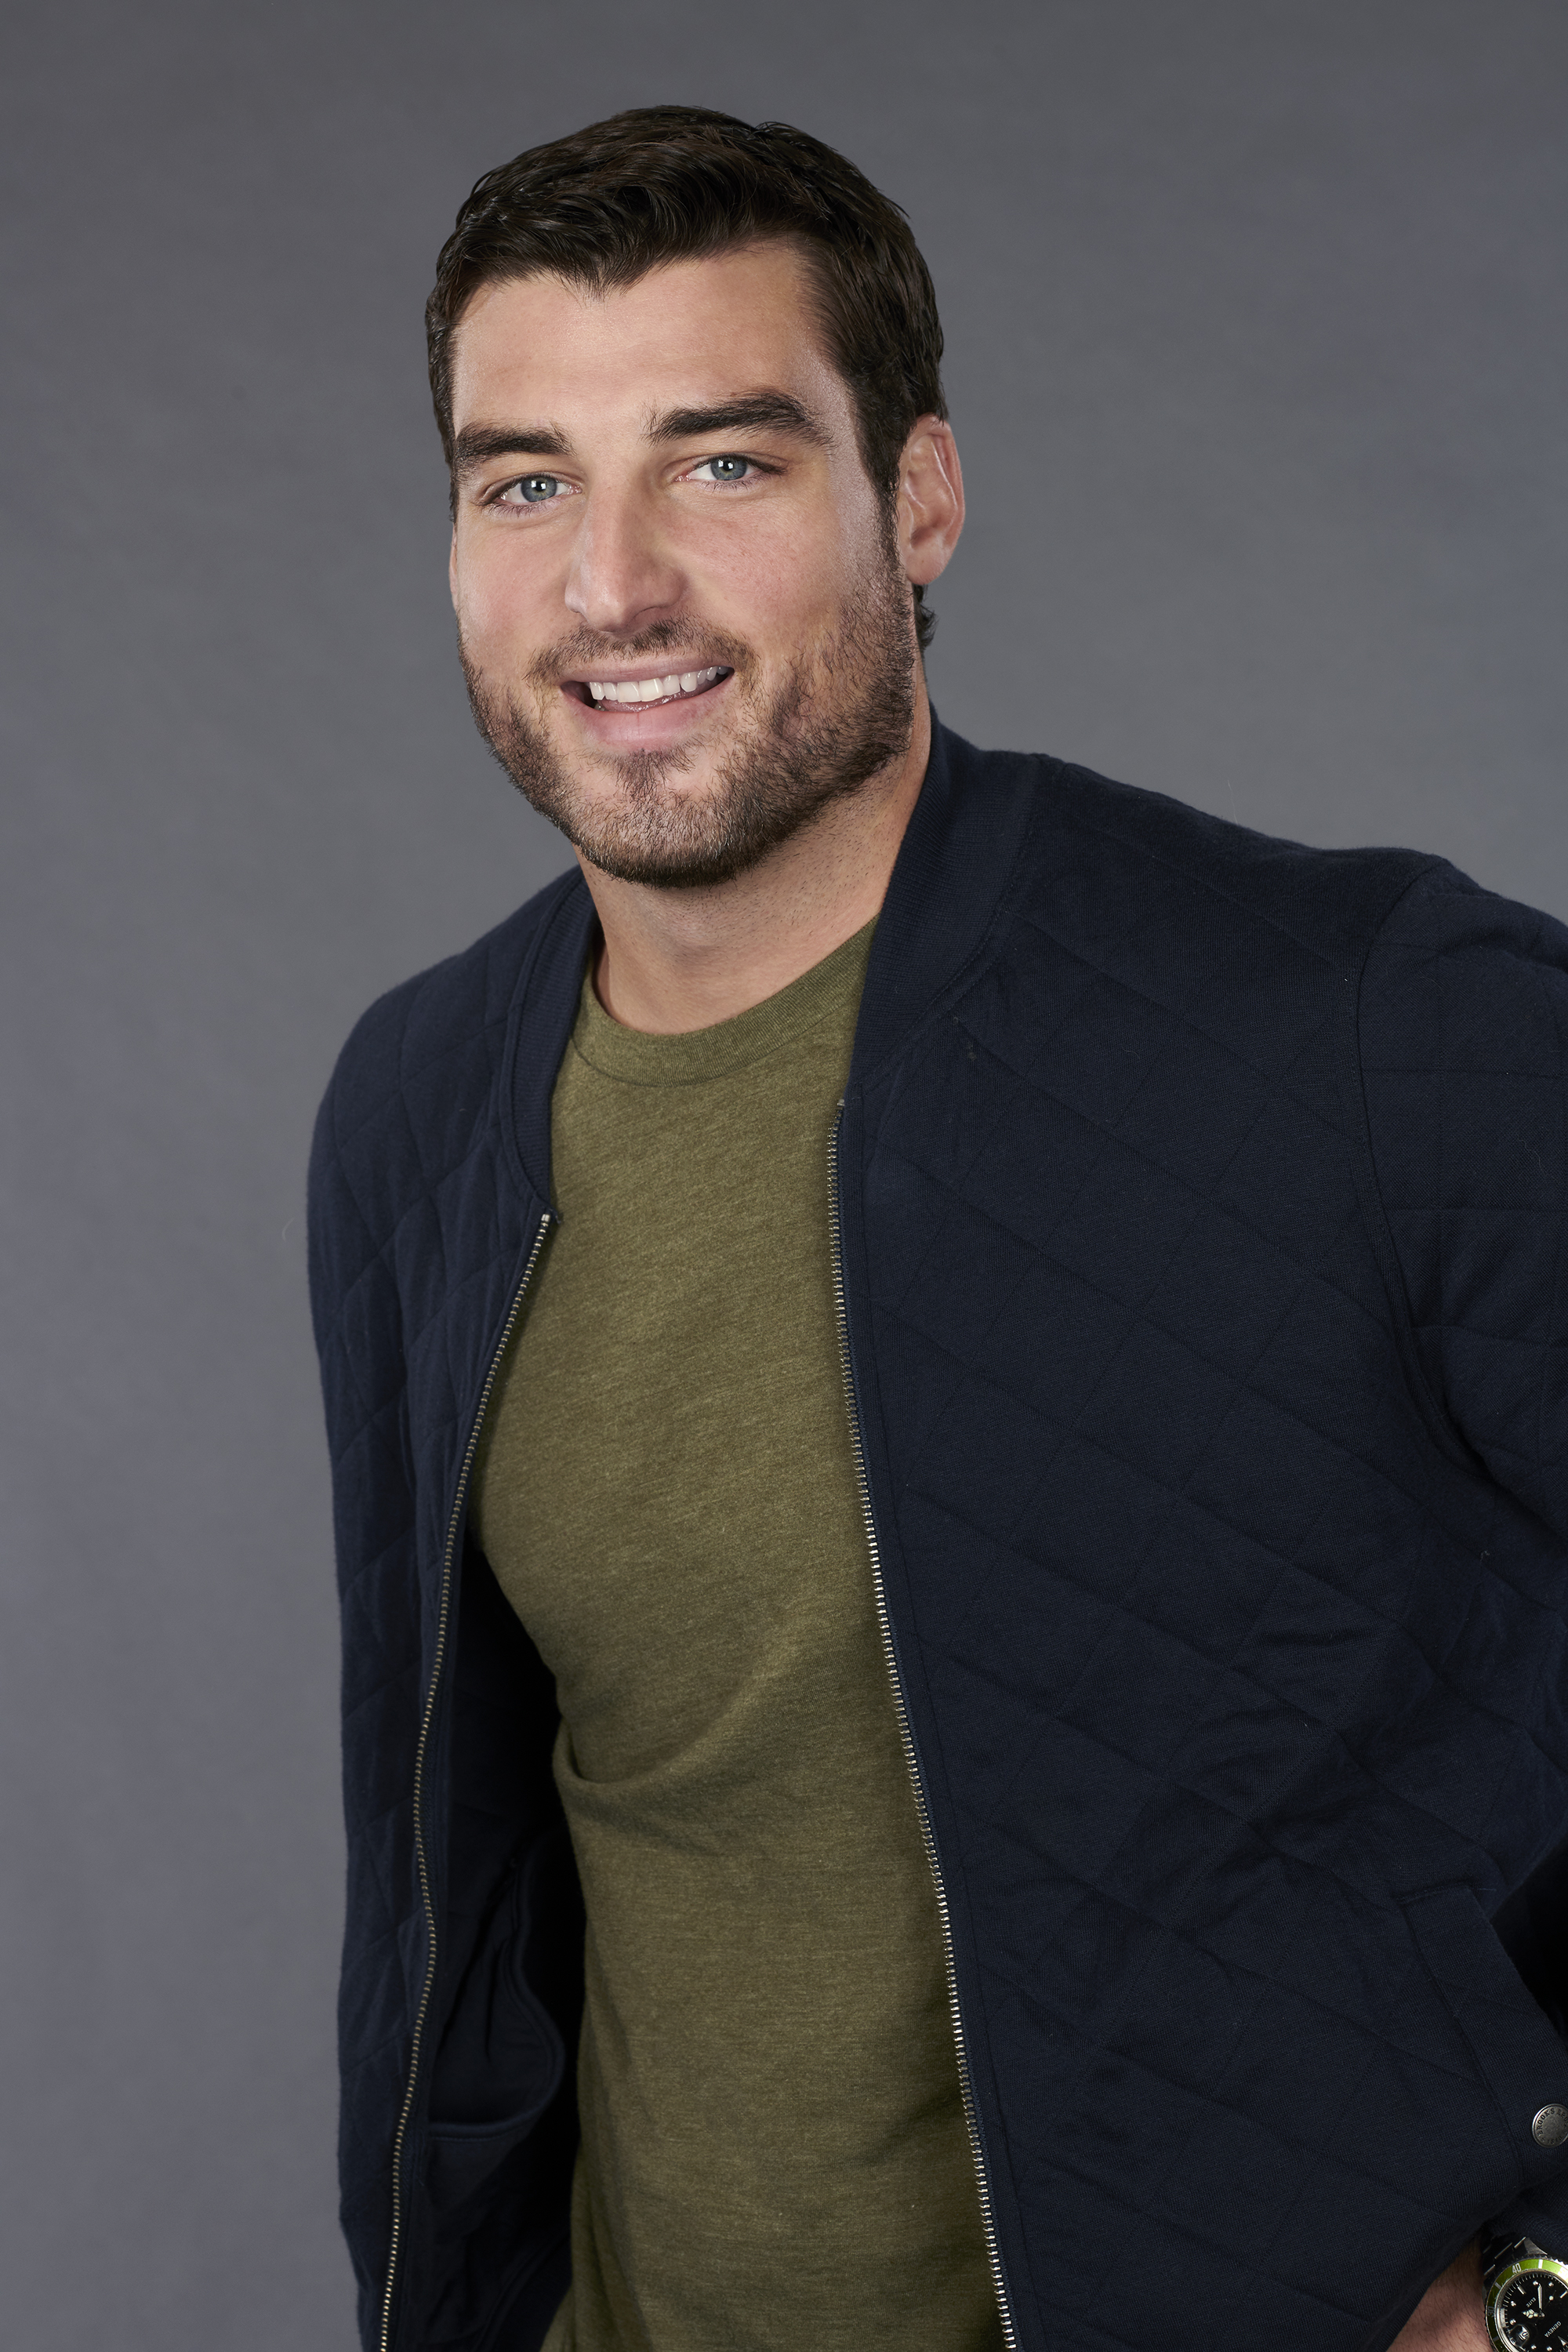 Bachelorette 15 - Tyler Gwozdz - *Sleuthing Spoilers* - Page 2 1c91a555-1244-4d6b-b151-84db5a1c80a9